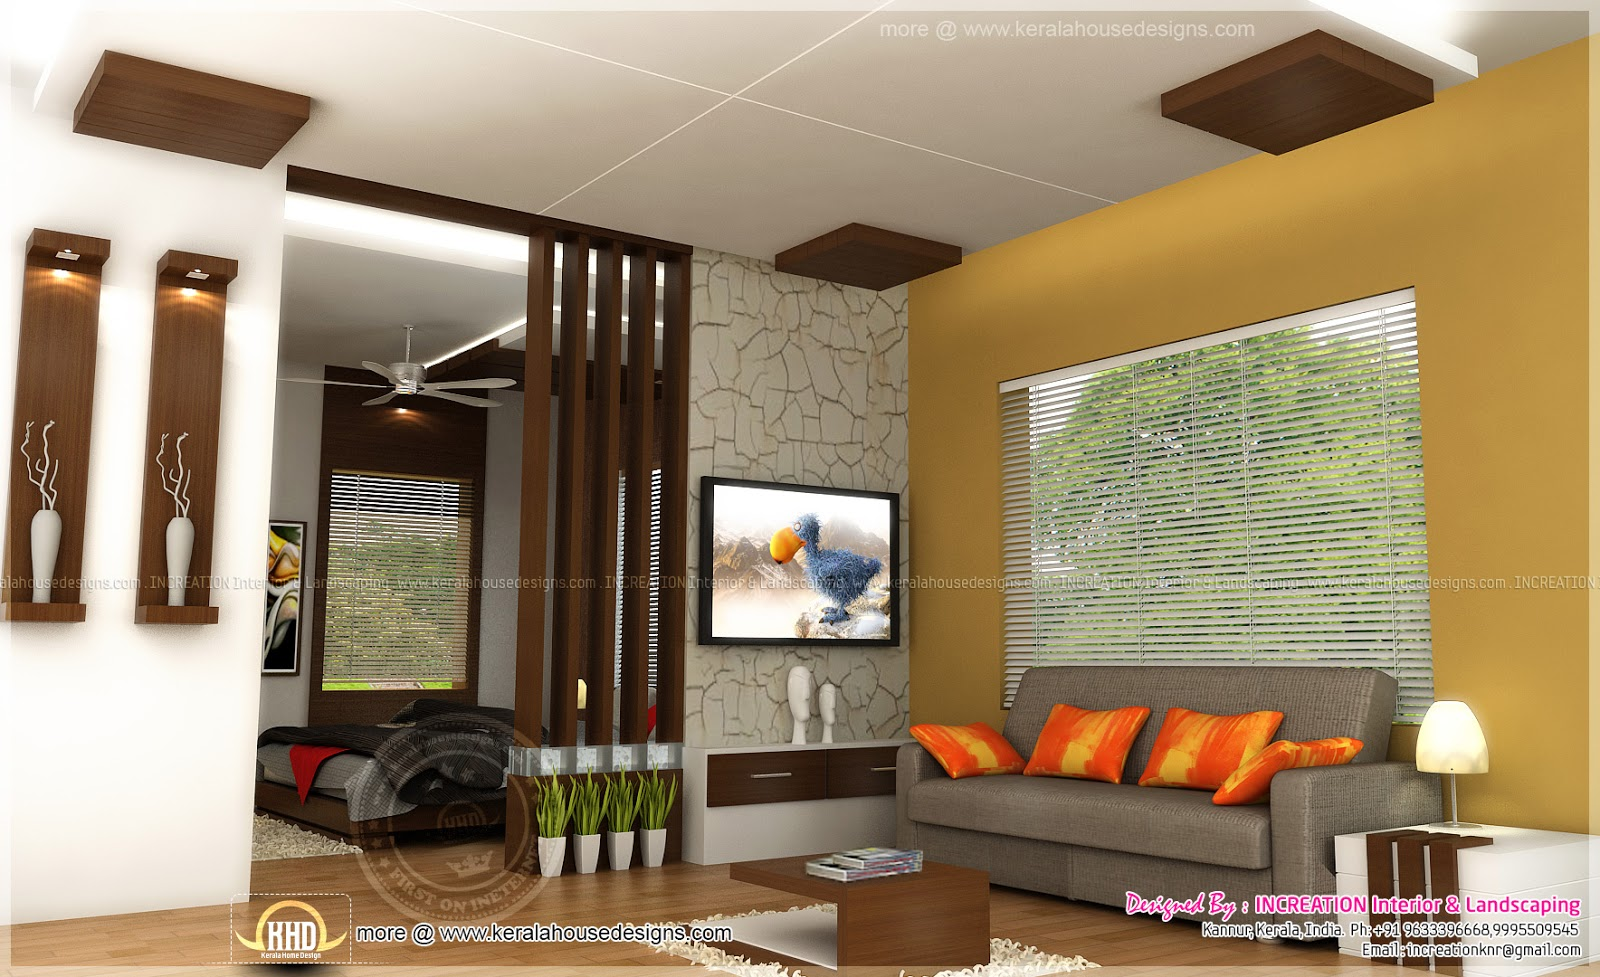 For more info about these interior renderings, contact